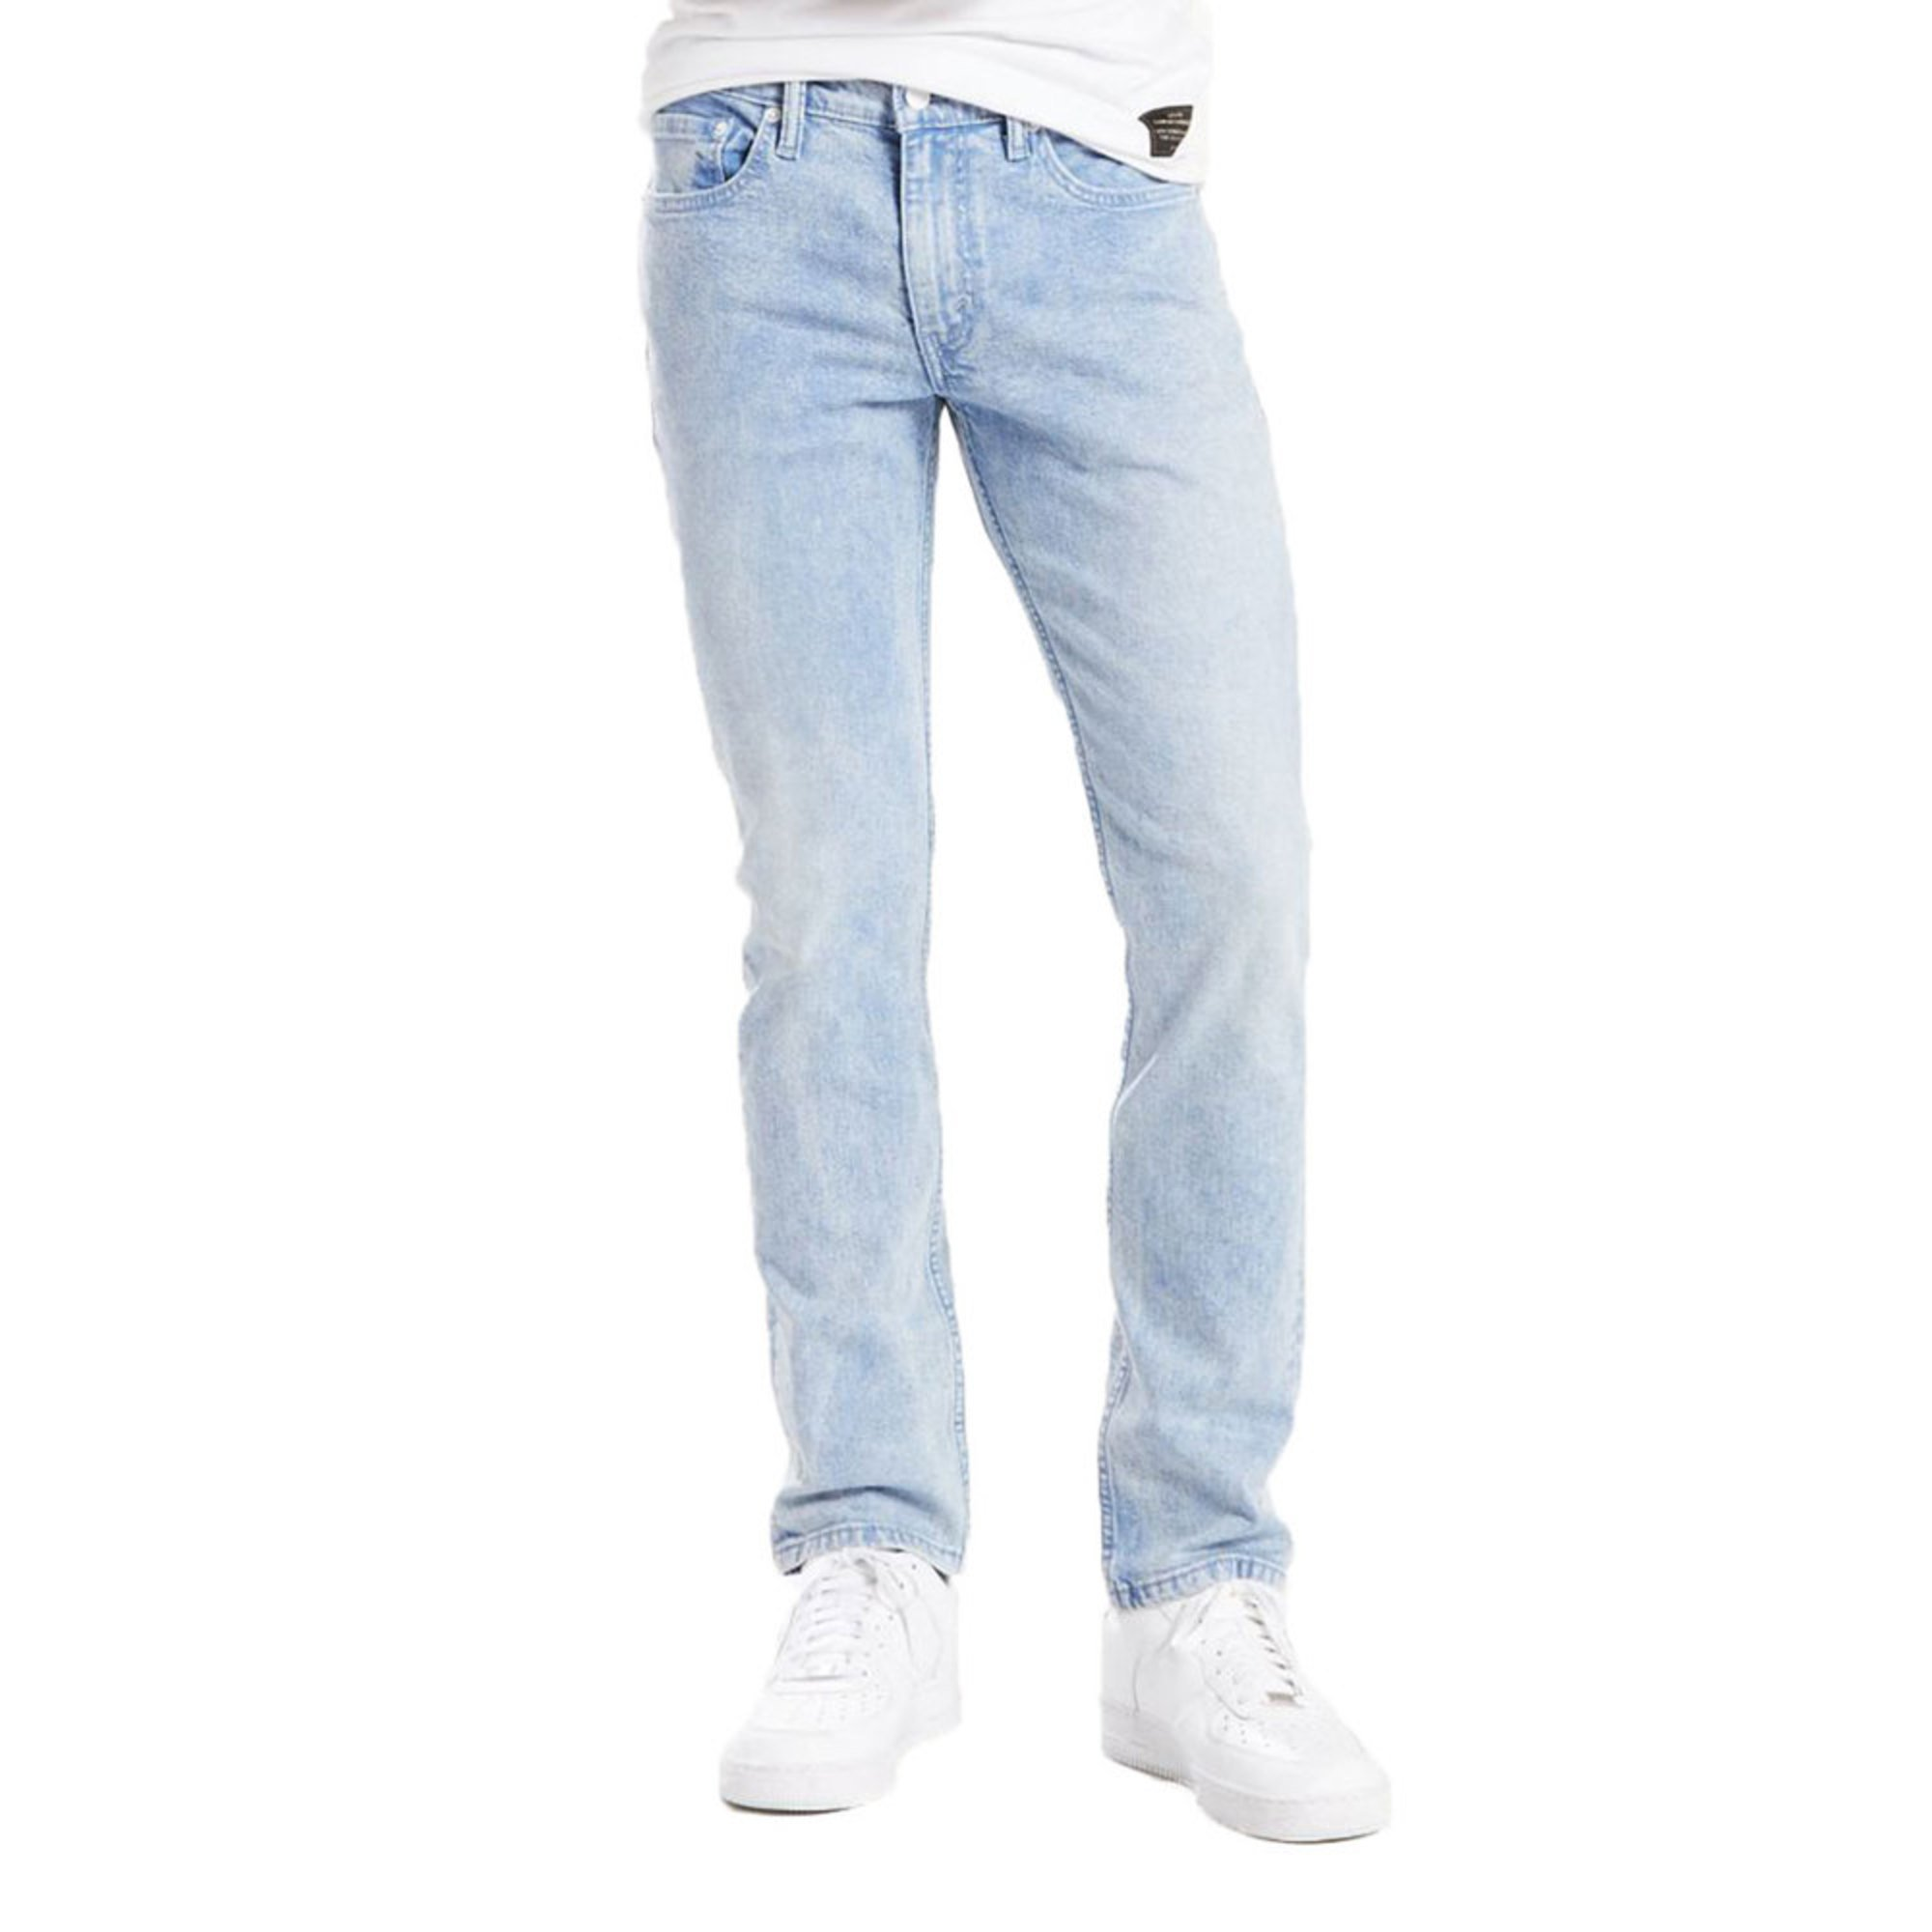 b9da6dd9108 Levi's Men's 511 Slim Fit Denim Jeans In Washed Blue | Collection ...